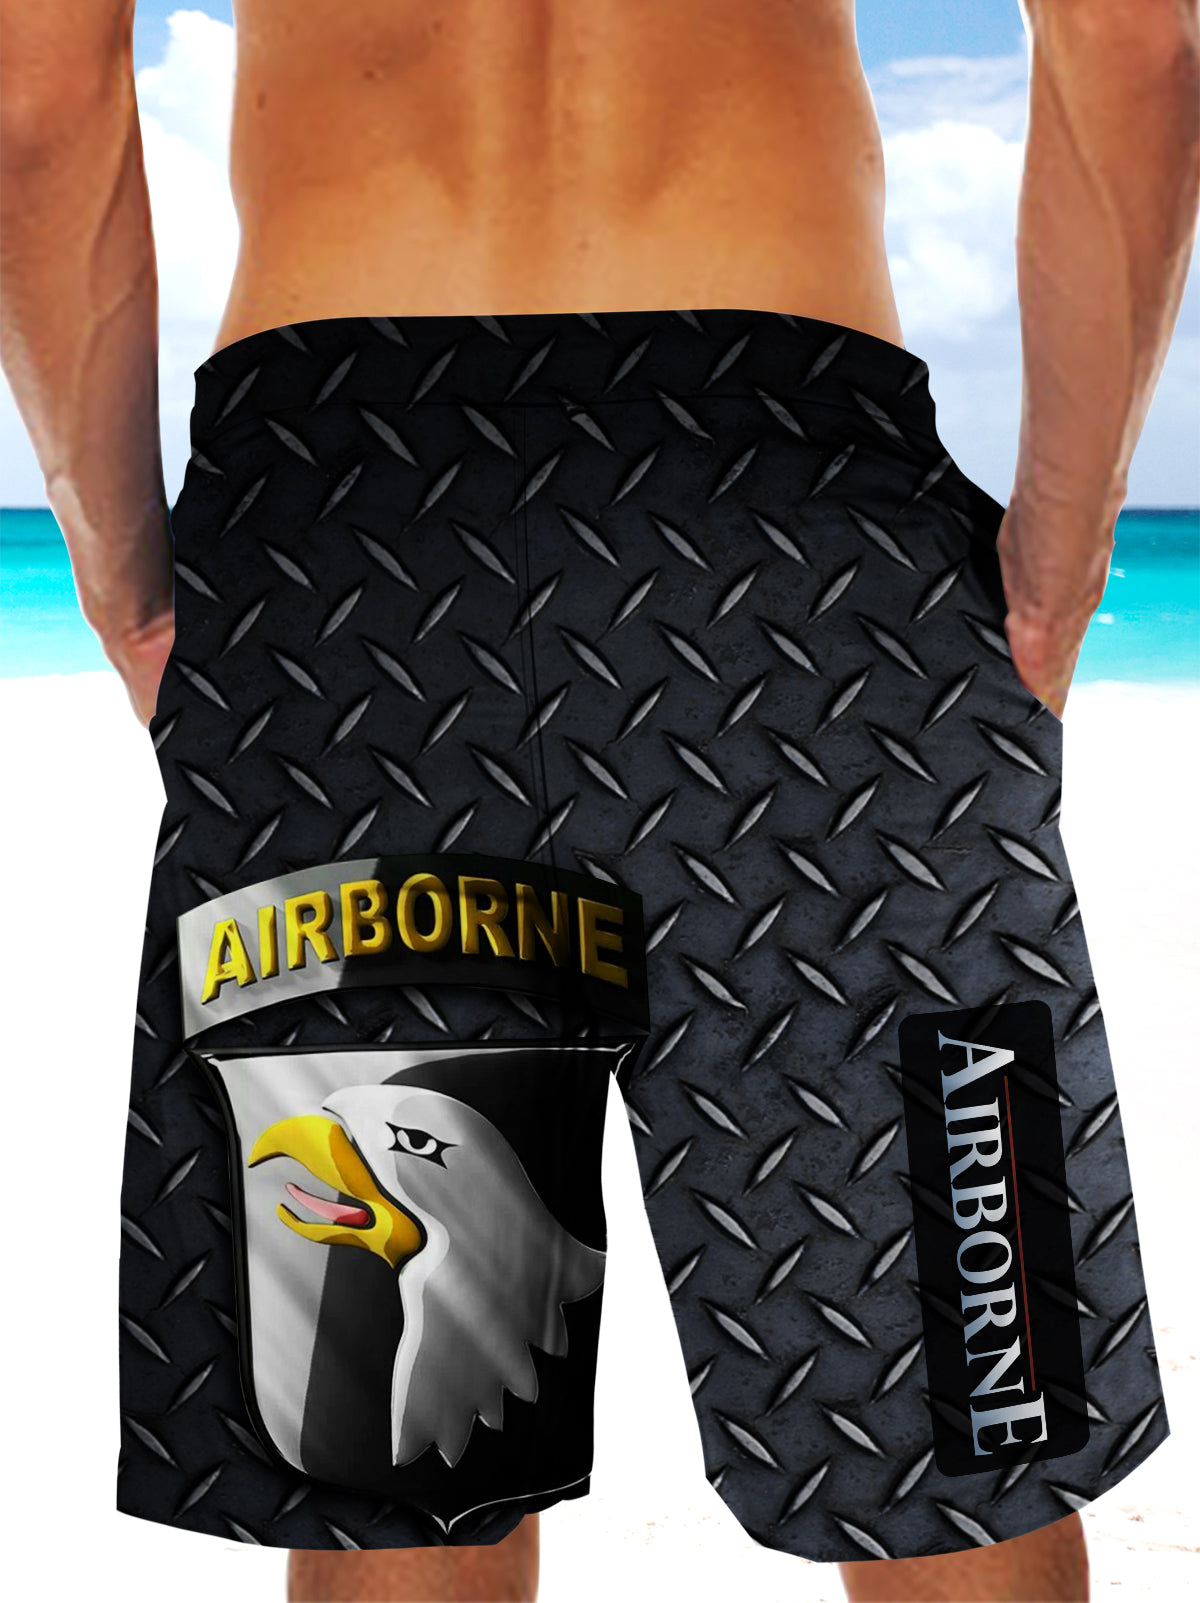 Army Forces Art Ultra-light Drawstring Shorts for Men - AIRBORNE FORCE PARATROOPERS 002 - designfullprint